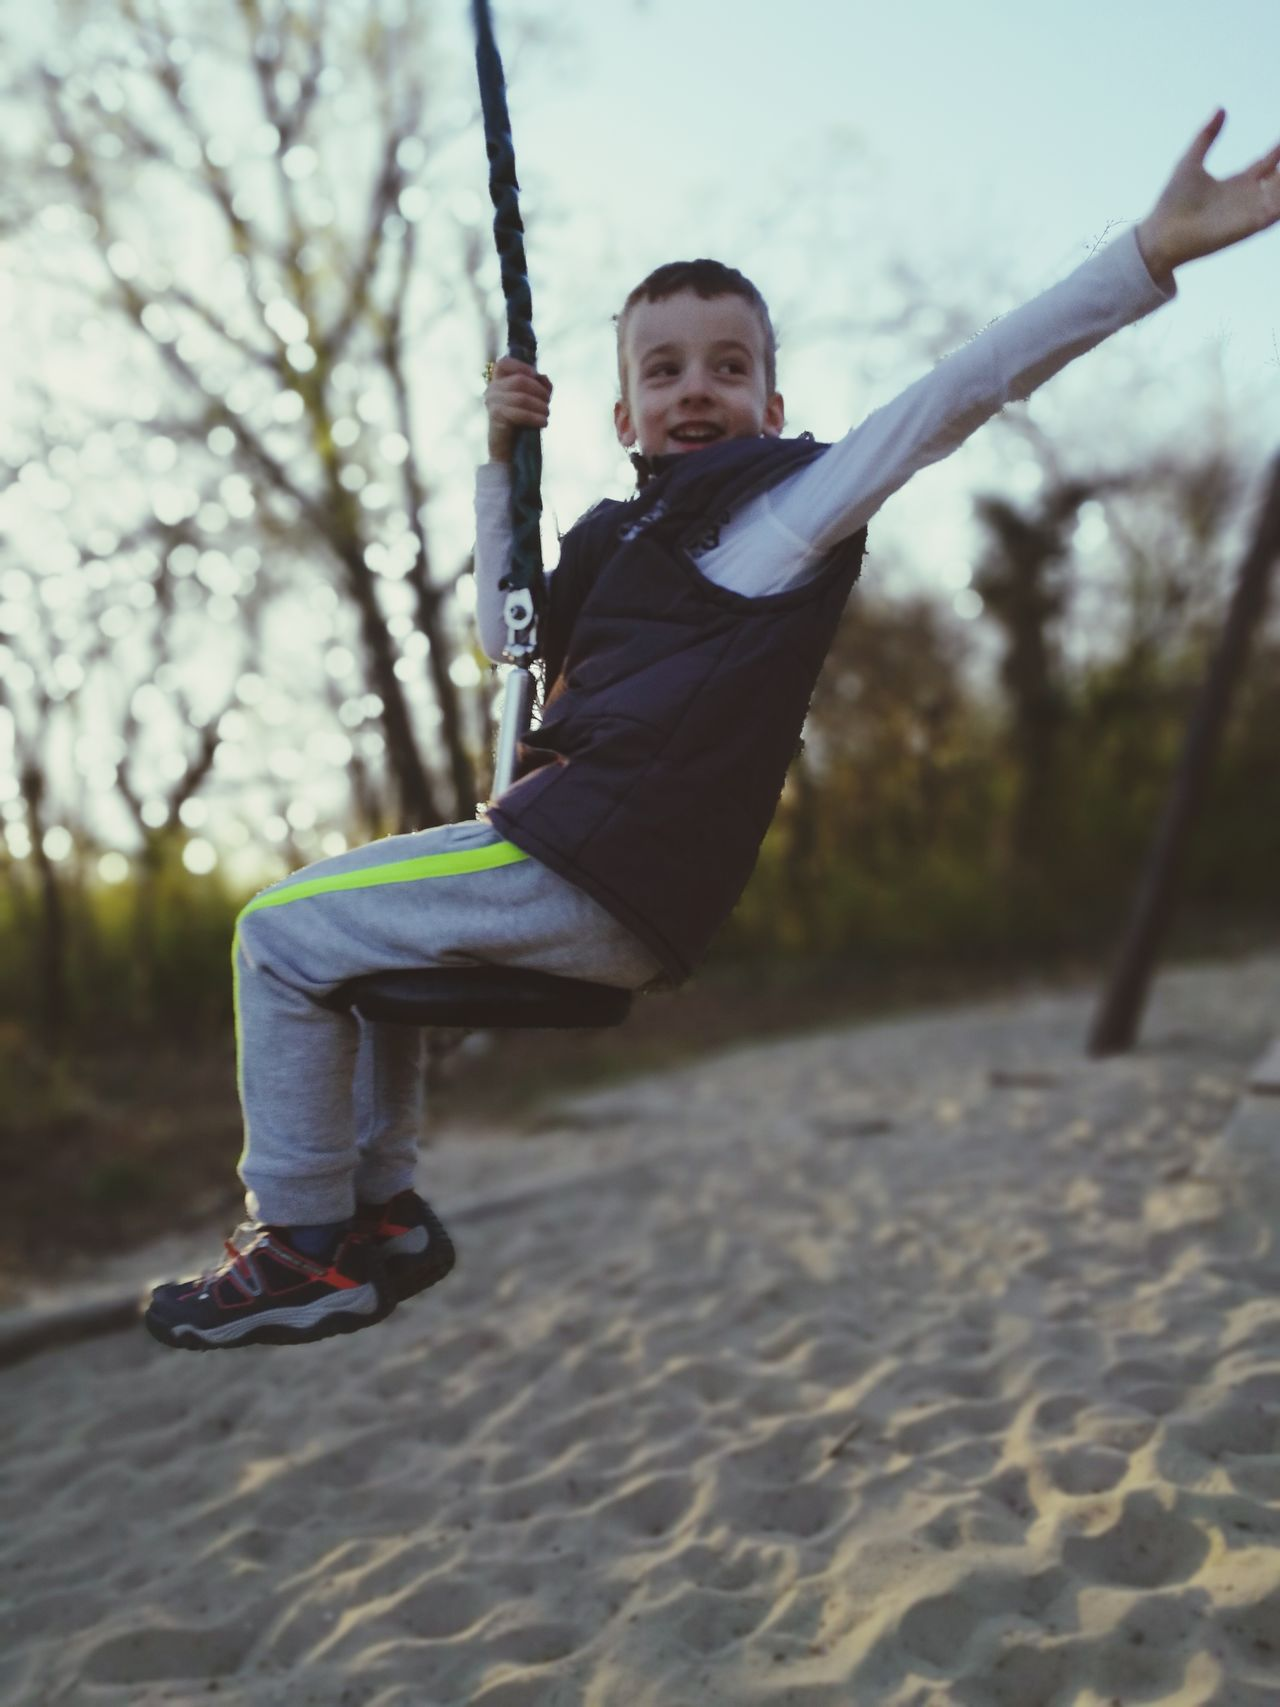 Full Length Childhood Children Only Child One Boy Only One Person Casual Clothing Males  Outdoors People Leisure Activity Gripping Swing Day Puddle Swing Set  EyeEmNewHere Adventure Park Slider Slide Happiness Happy Having Fun Long Goodbye The Great Outdoors - 2017 EyeEm Awards